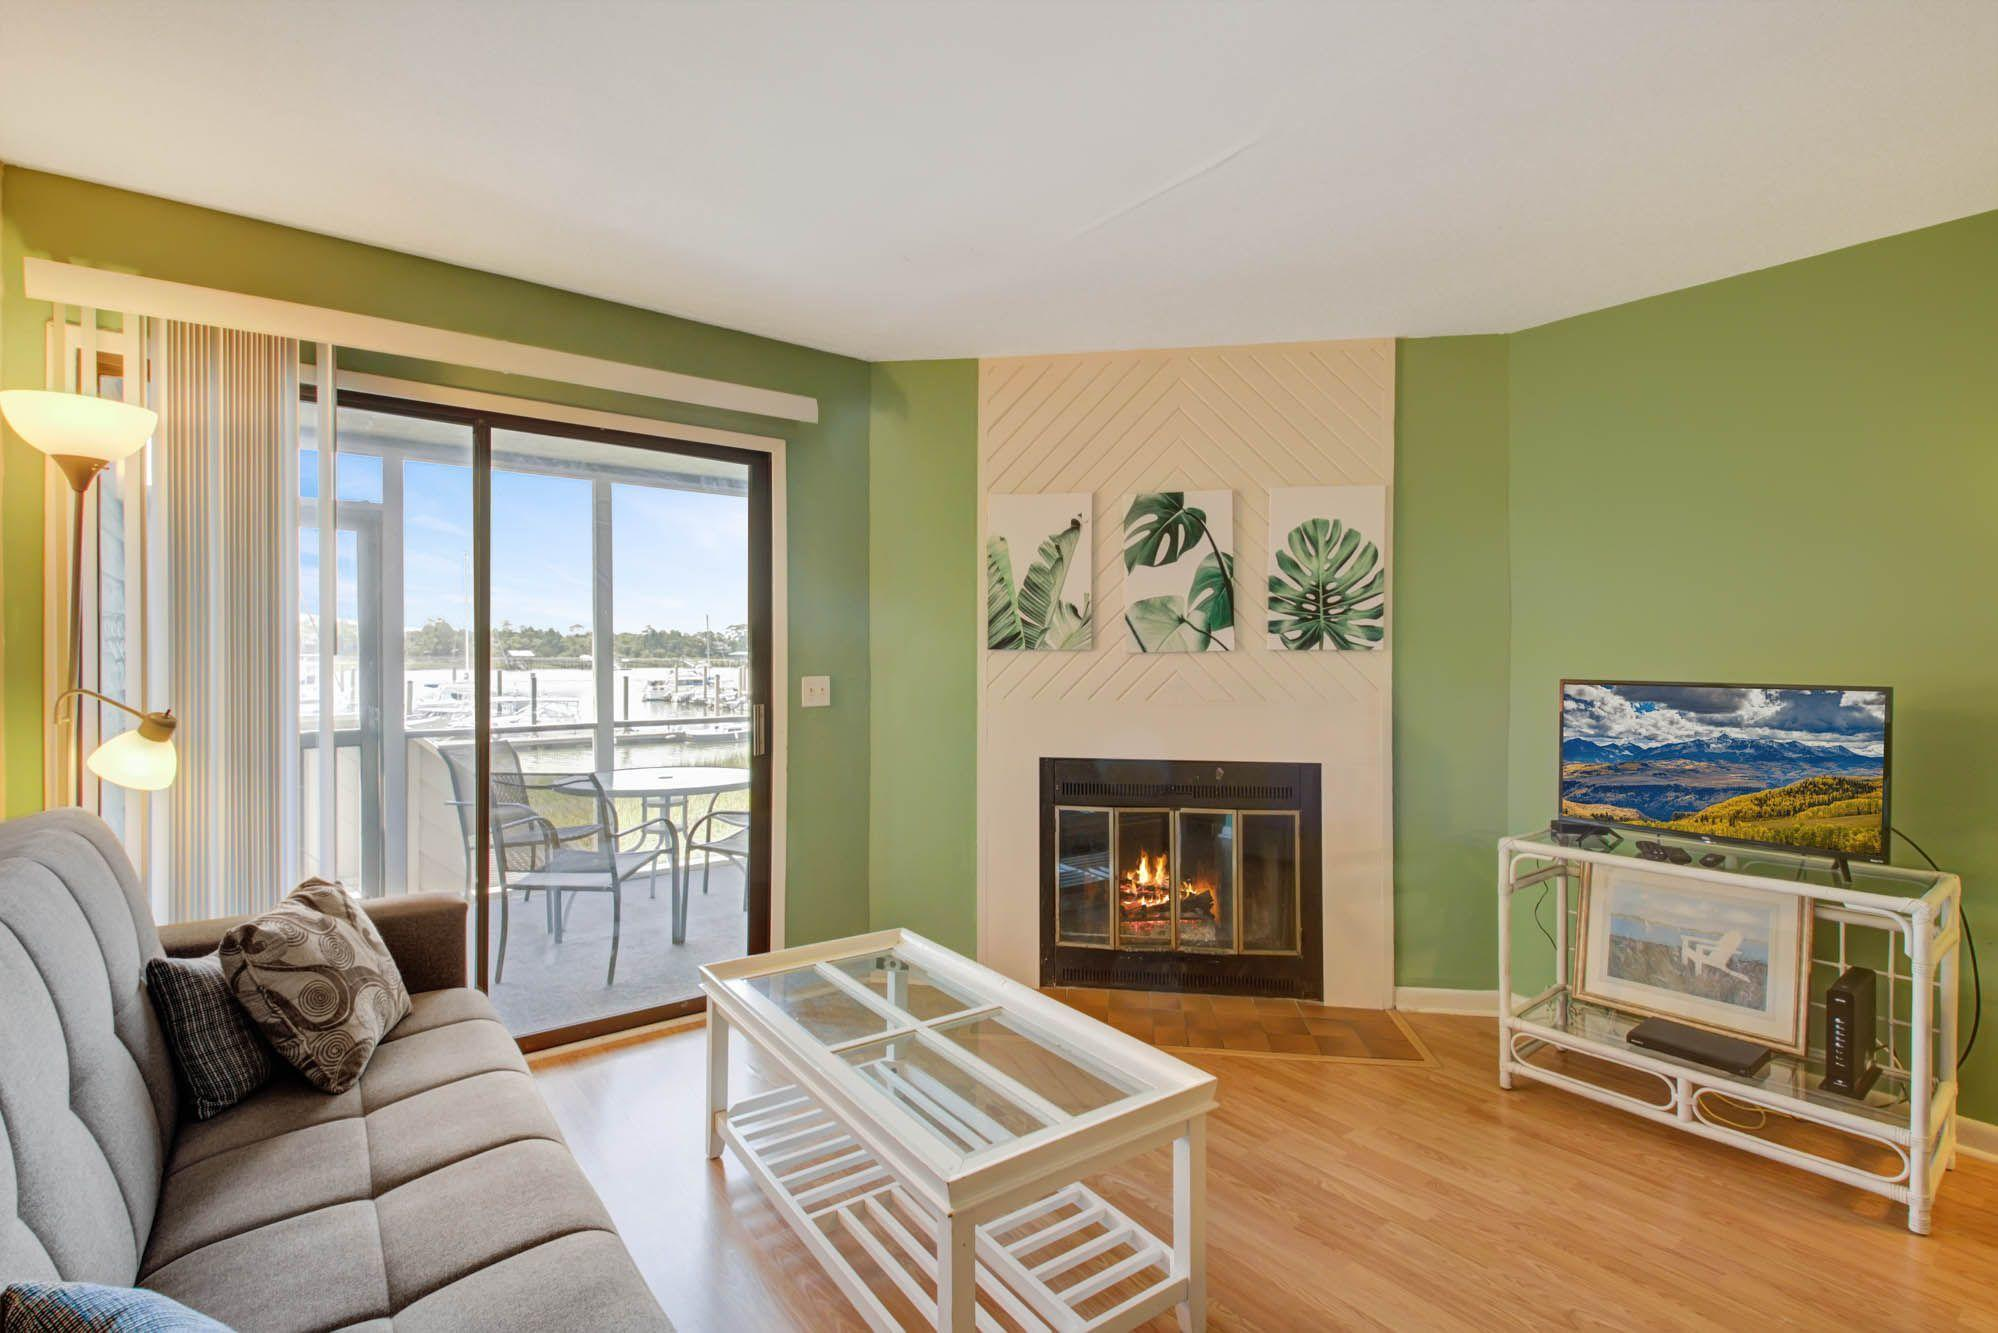 Mariners Cay Homes For Sale - 51 Mariners Cay, Folly Beach, SC - 16